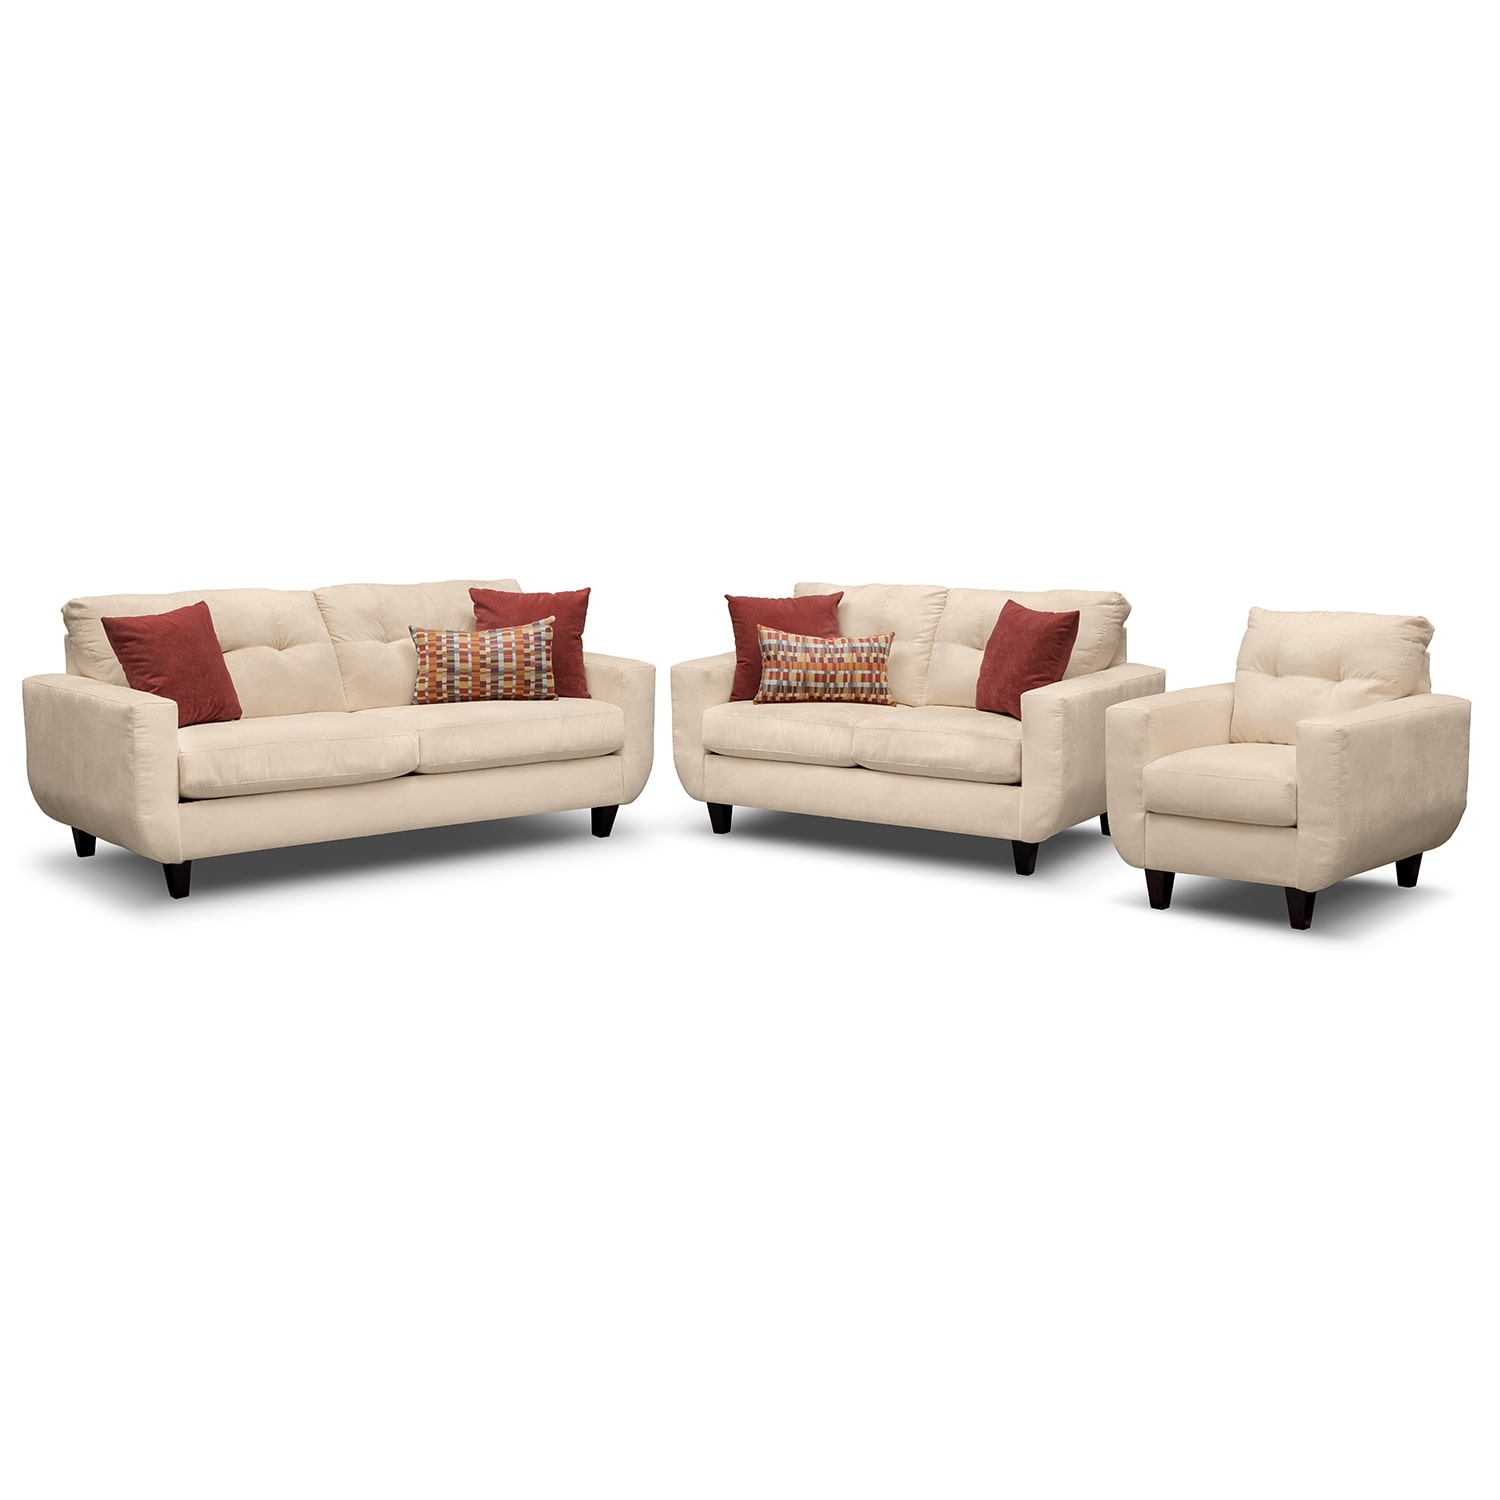 West Village Sofa, Loveseat and Chair - Cream